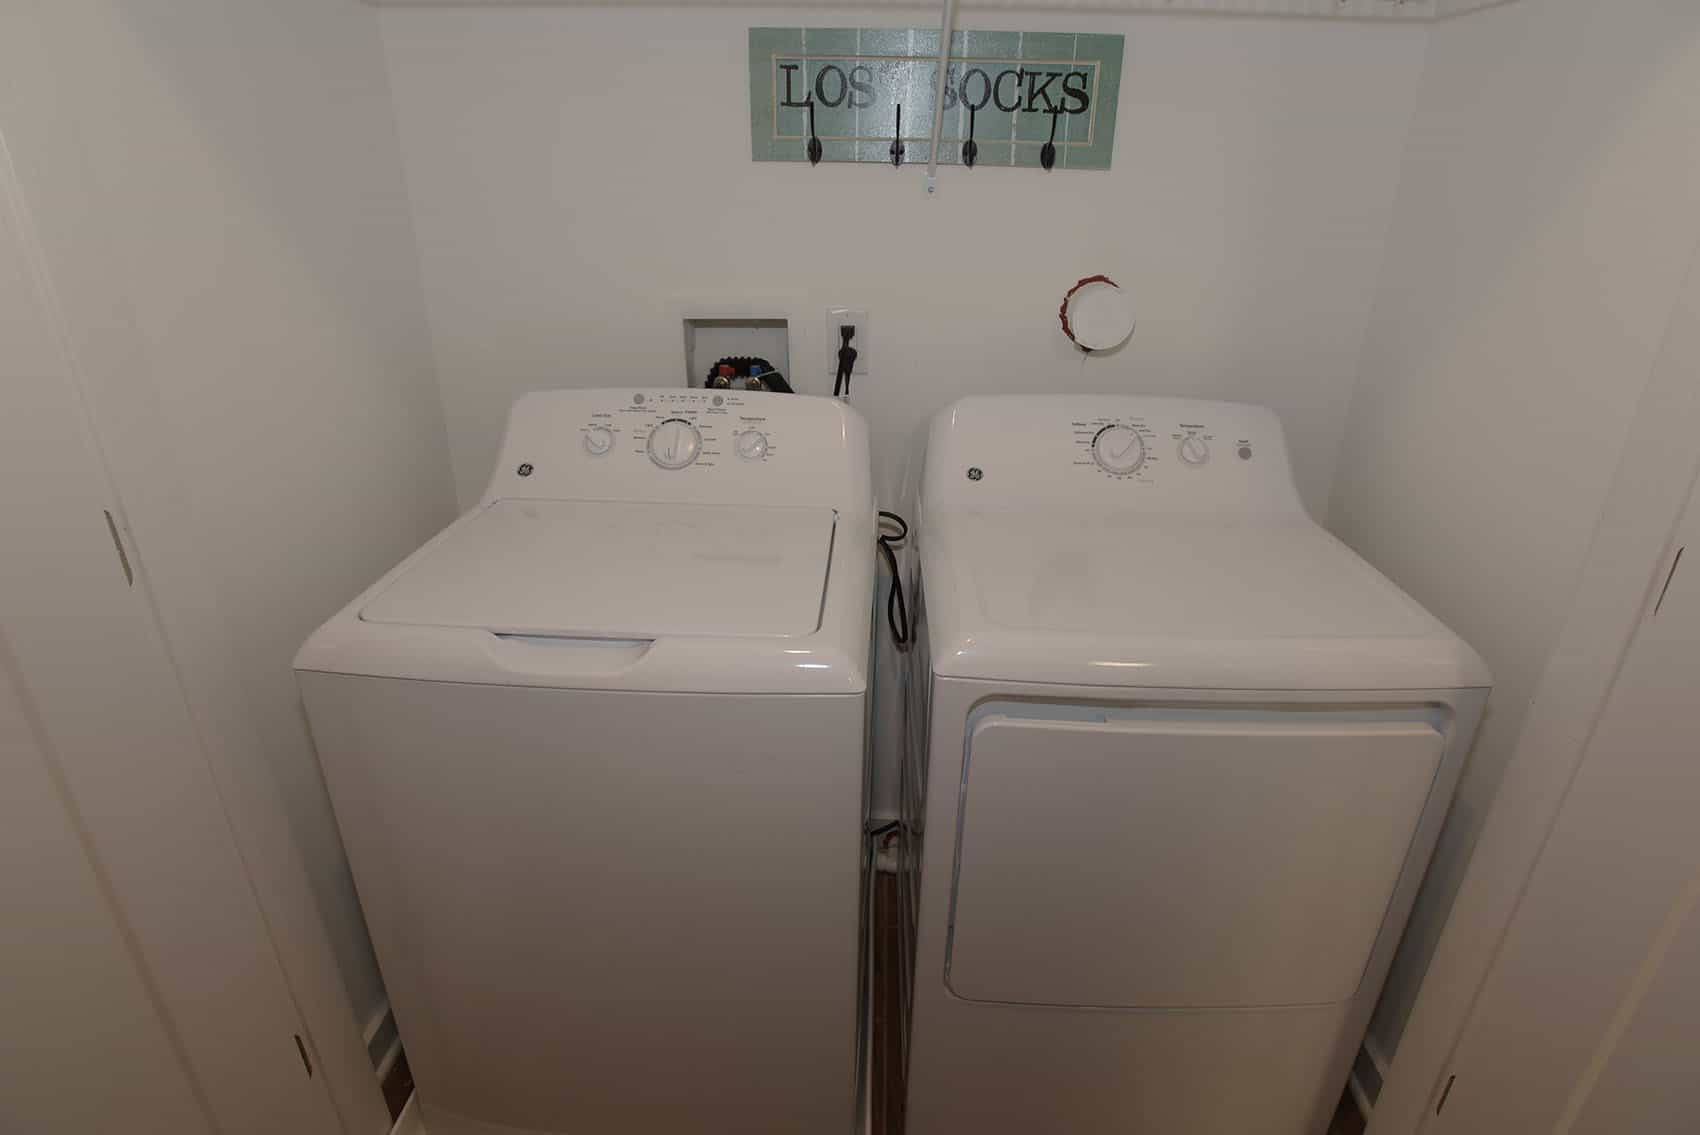 Full-size side-by-side washer and dryer at the Gardens at Jackson Twenty-One